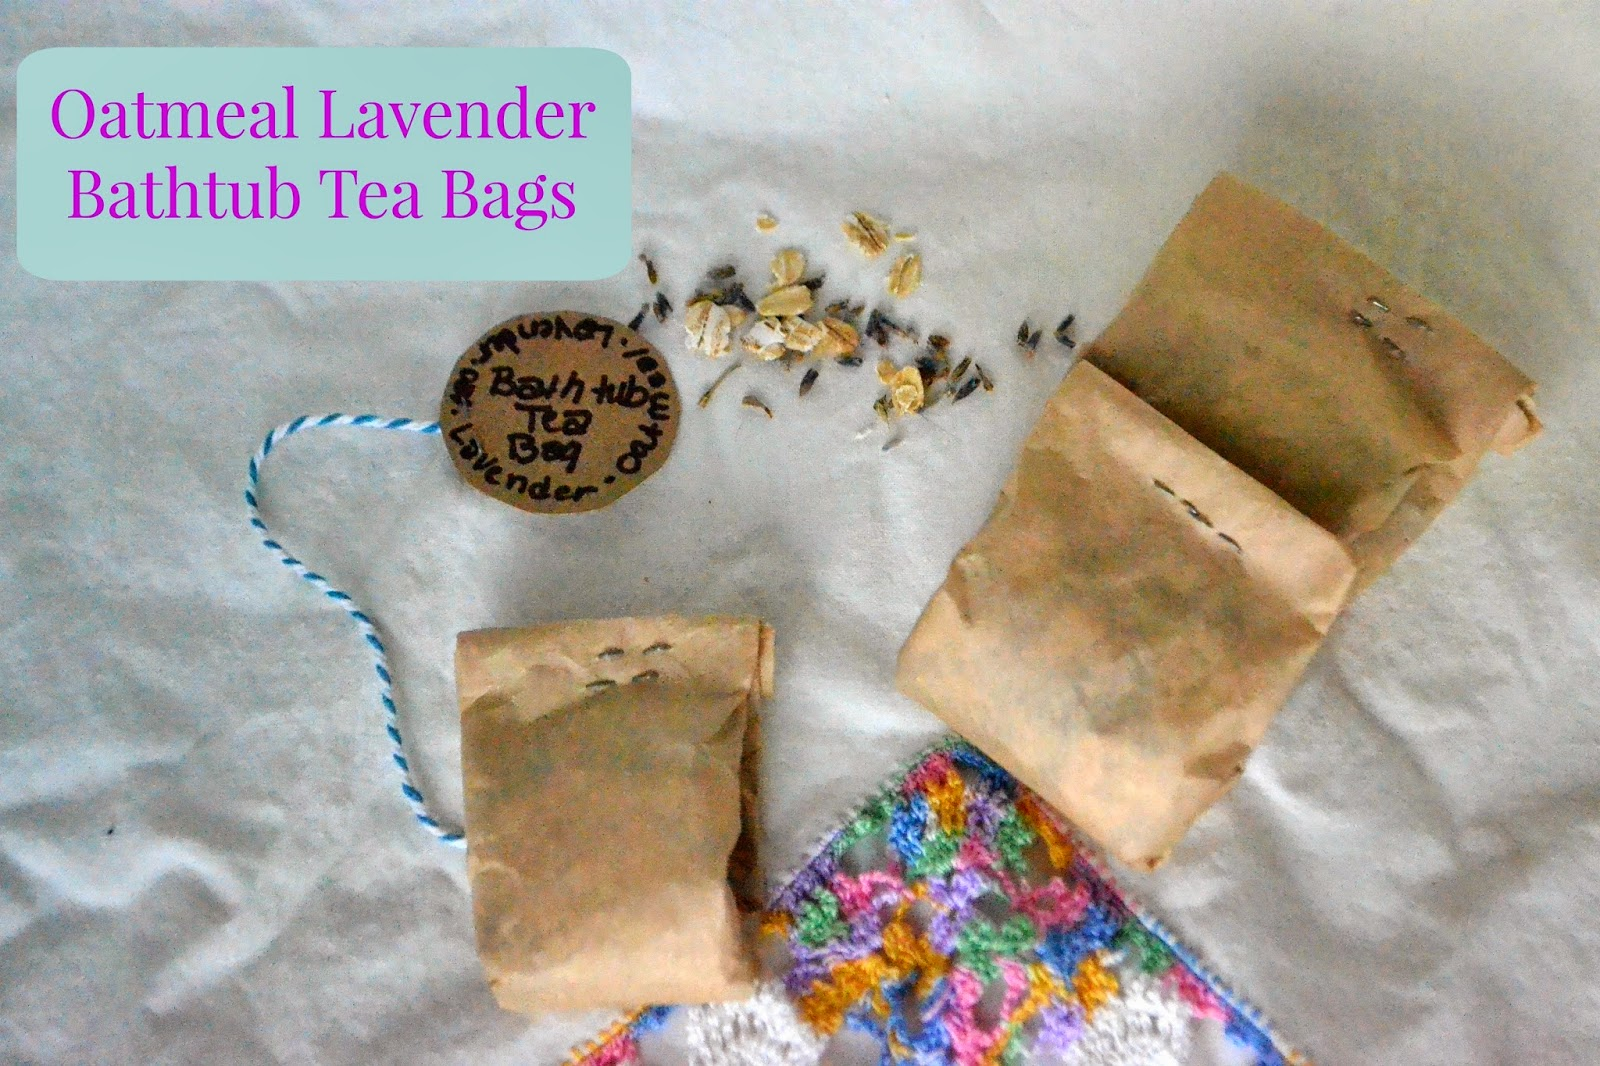 Bath tub Tea Bags